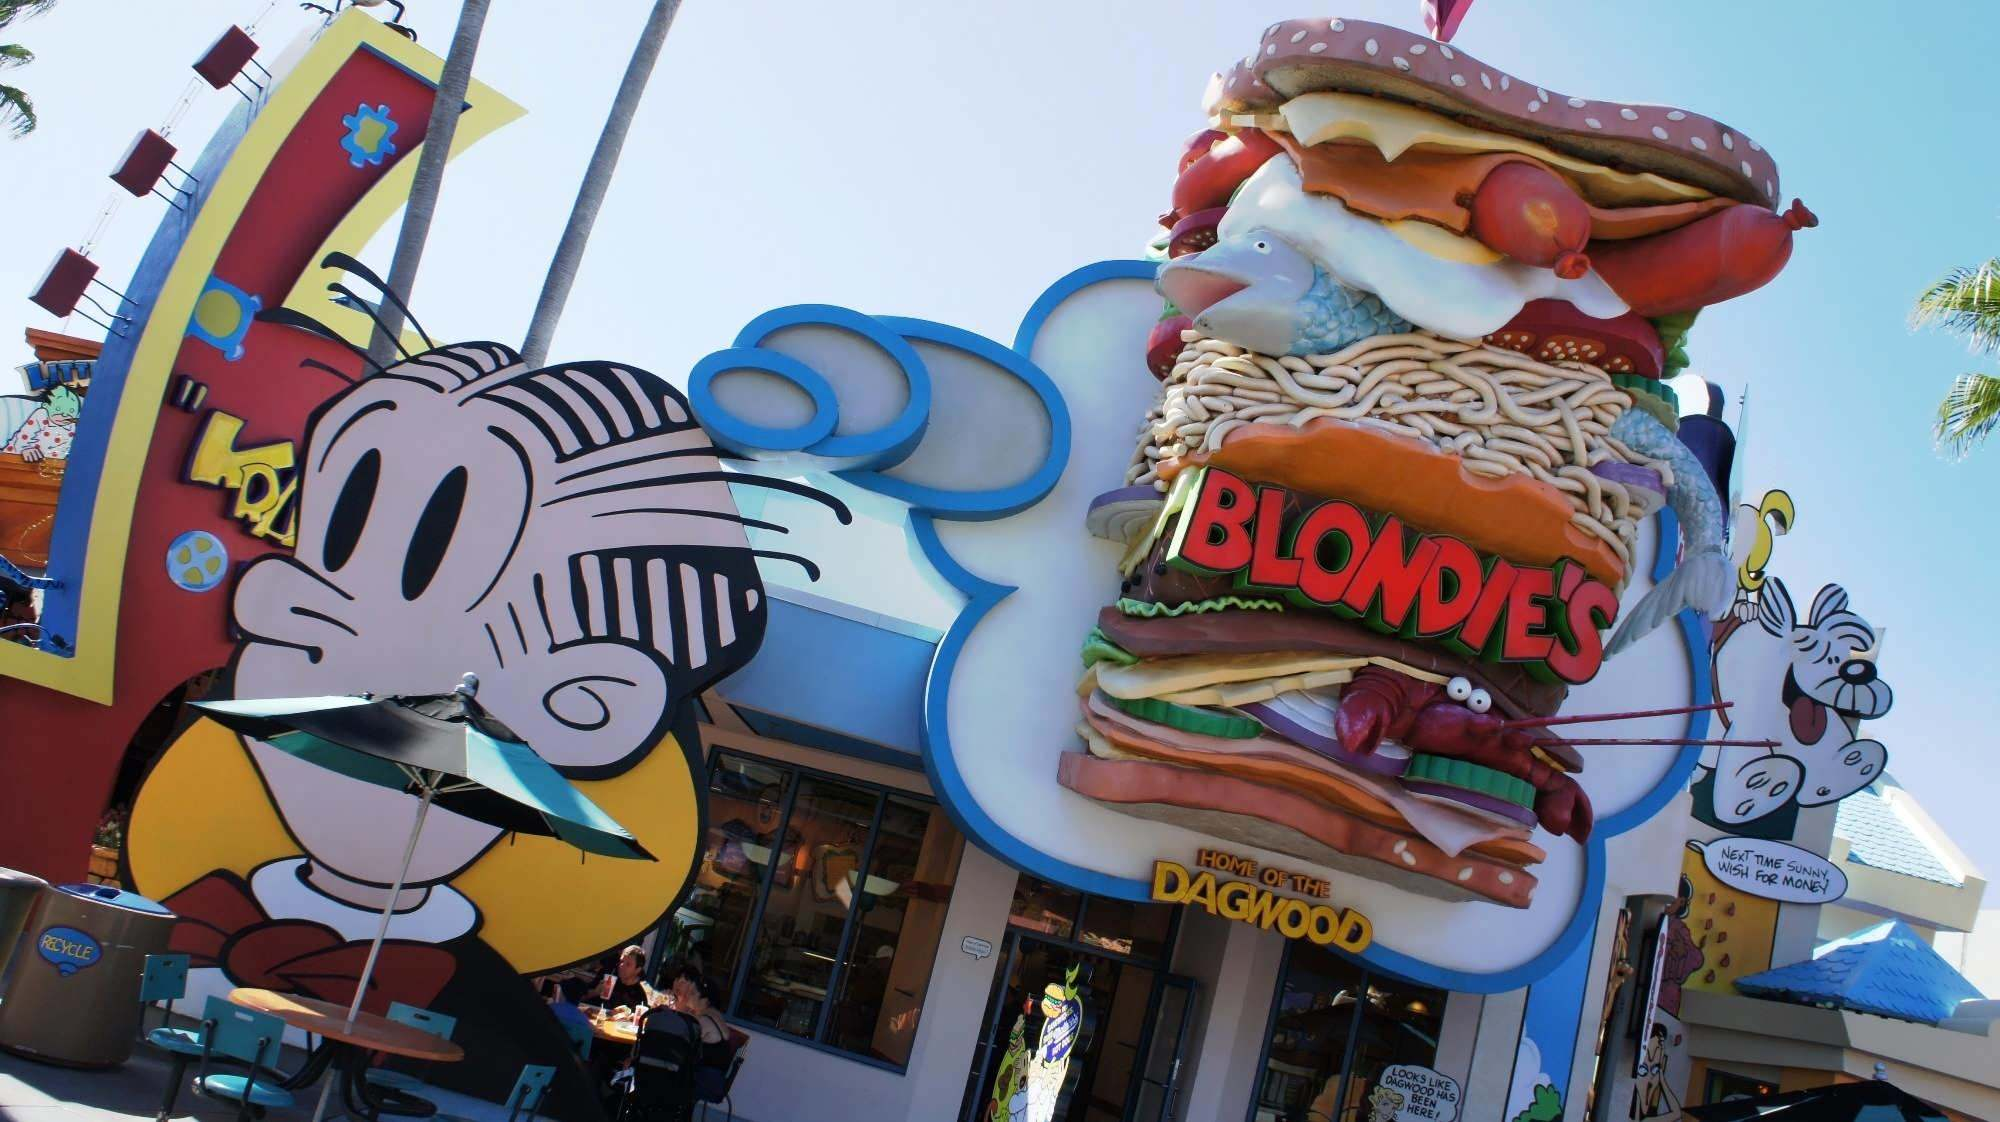 The entrance to Blondie's features a sandwich that is several feet high